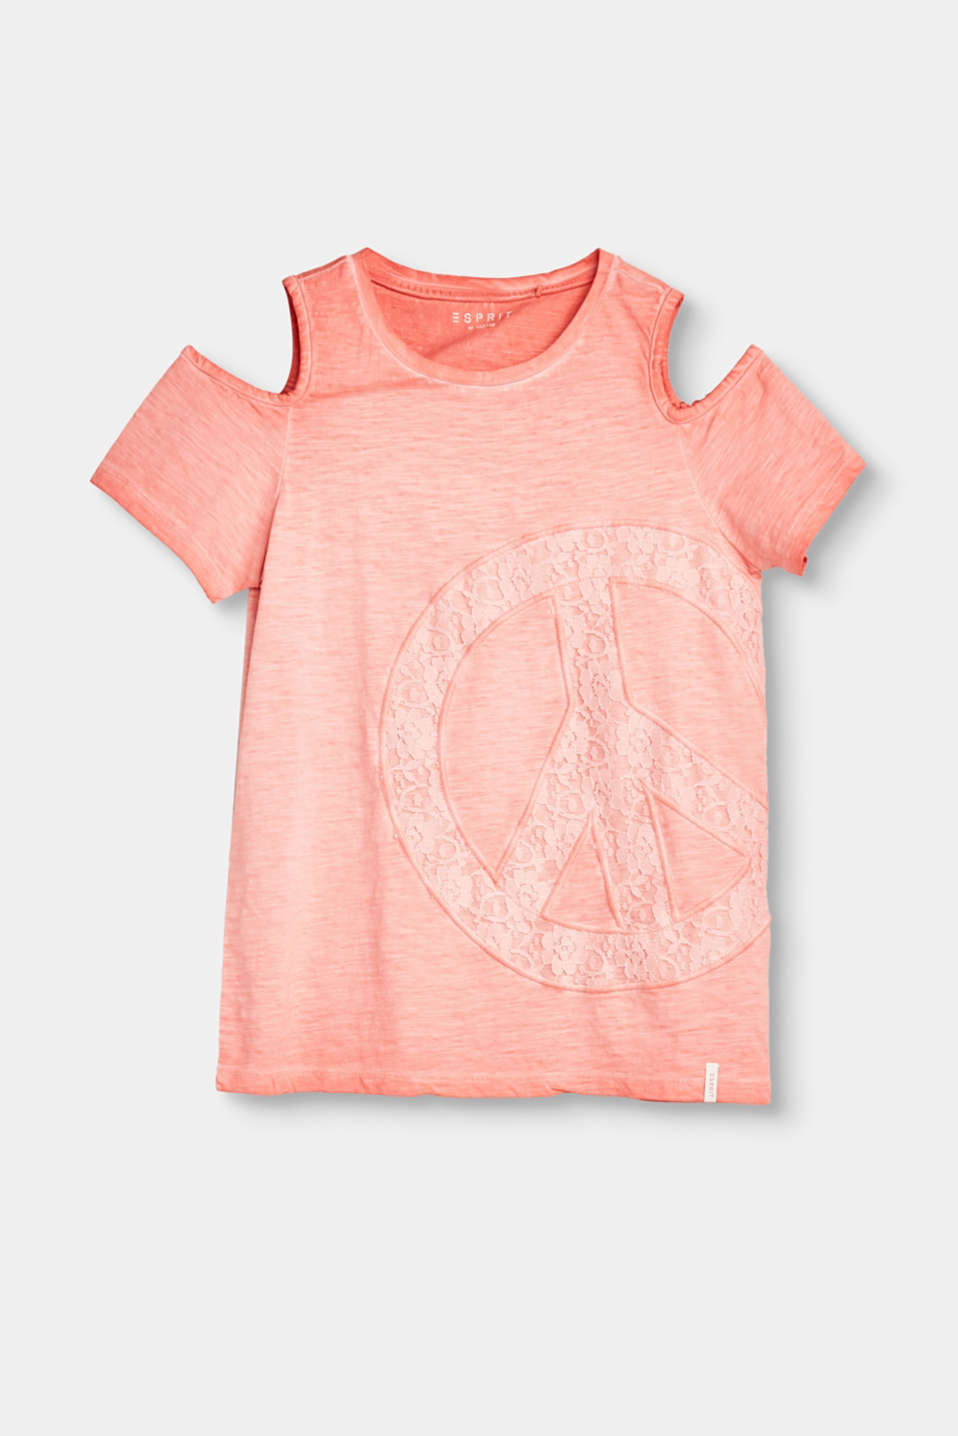 Zorgt in een handomdraai voor een modieuze hippie-uitstraling: dit slub jersey off-the-shoulder-T-shirt met een casual kleur en een peace-applicatie van kant.